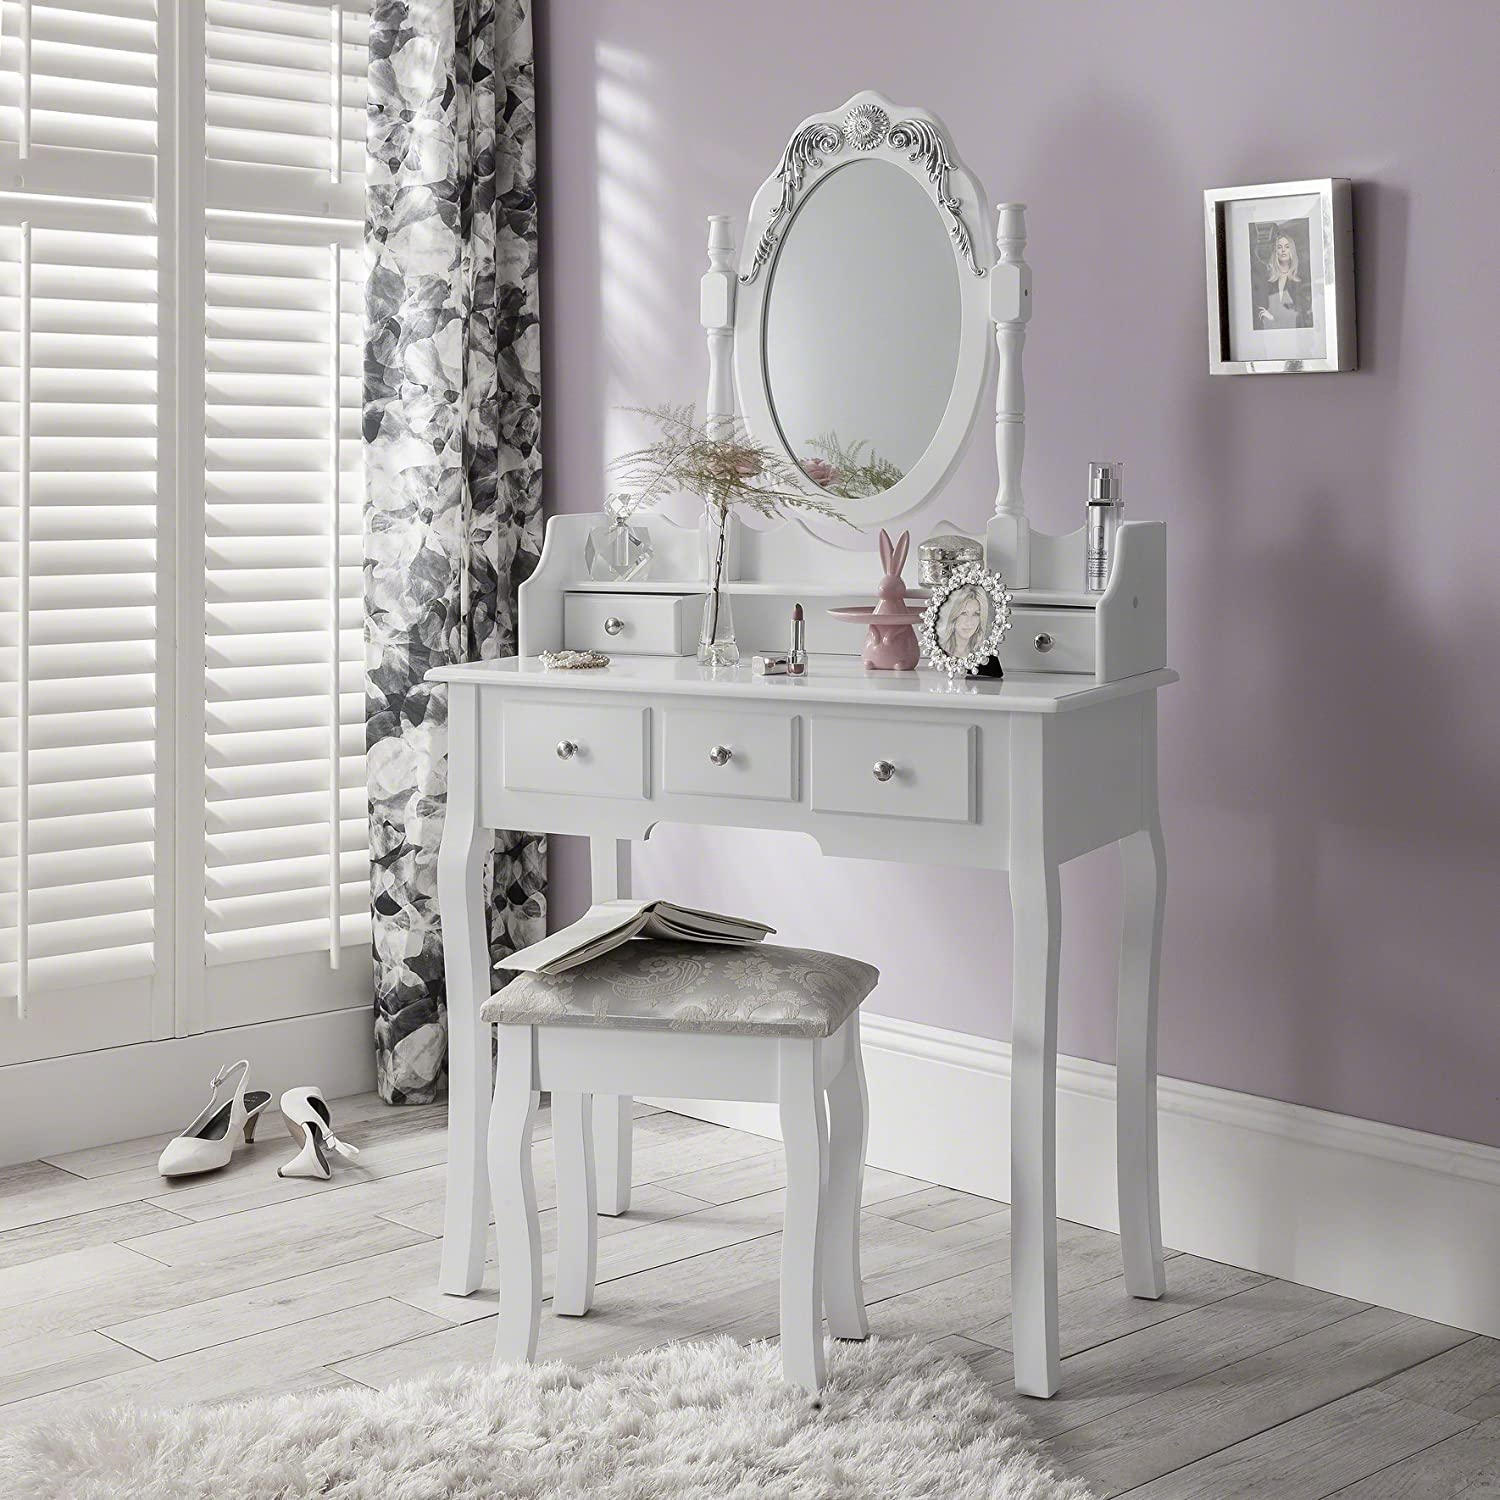 Capri Dressing Table Mirror and Stool Set Laura James Shabby Chic AGTC Ltd